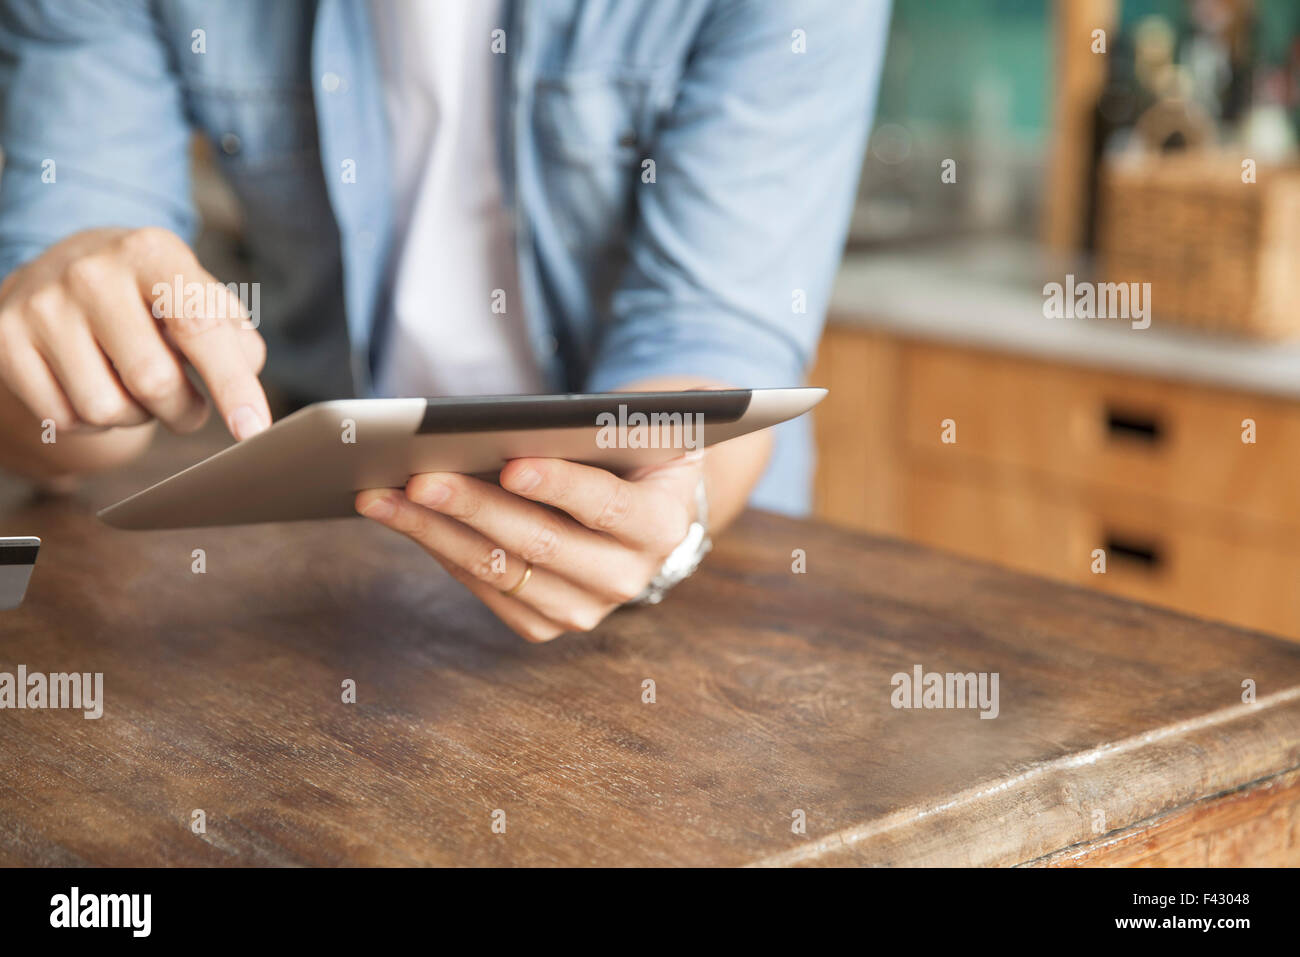 Man using wireless device at home - Stock Image